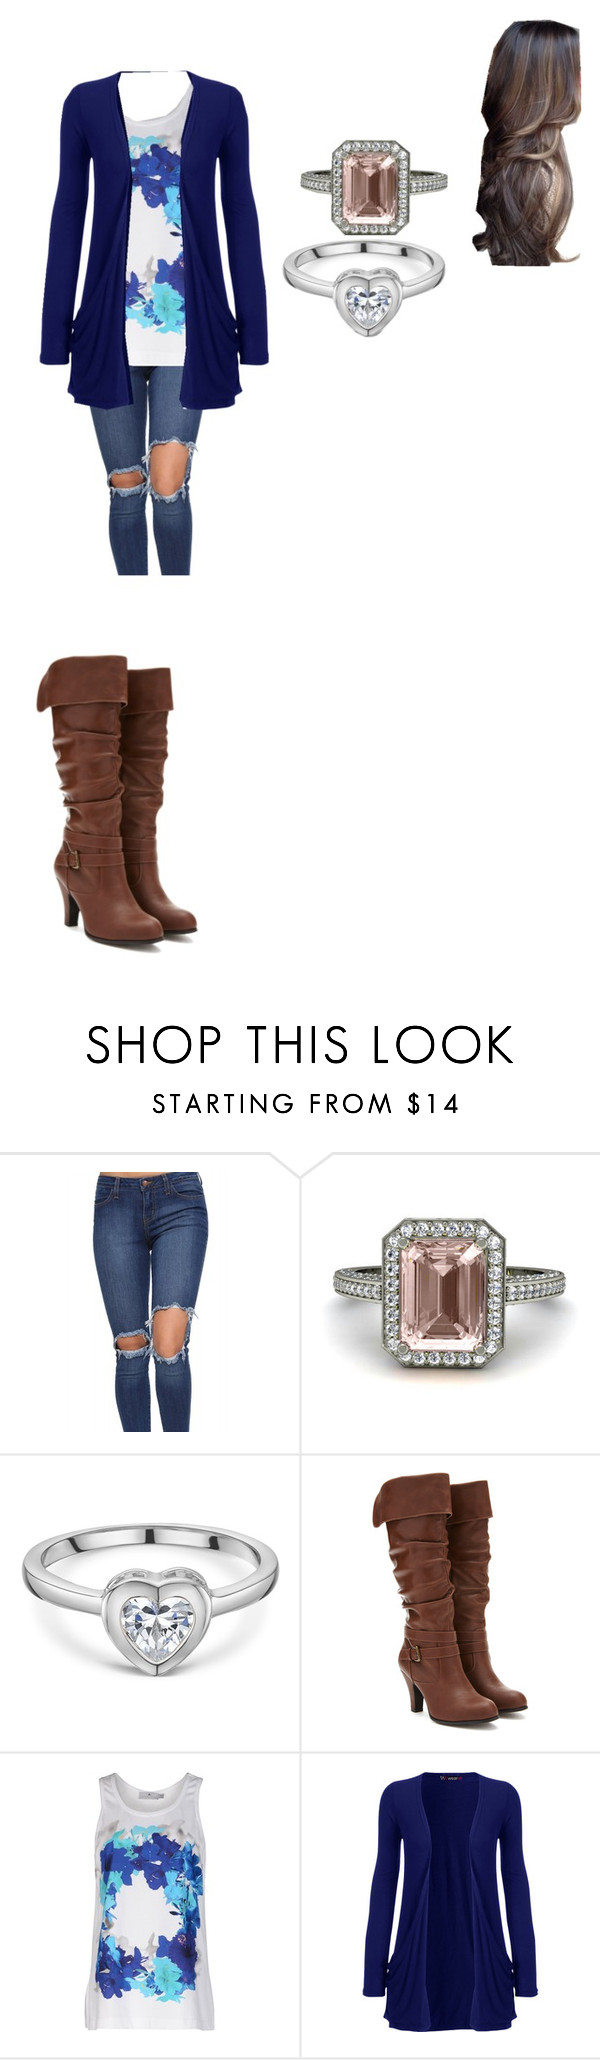 """""""leaving for Orlando Florida with harry"""" by guardgirl77 ❤ liked on Polyvore featuring Forever 21, adidas and WearAll"""